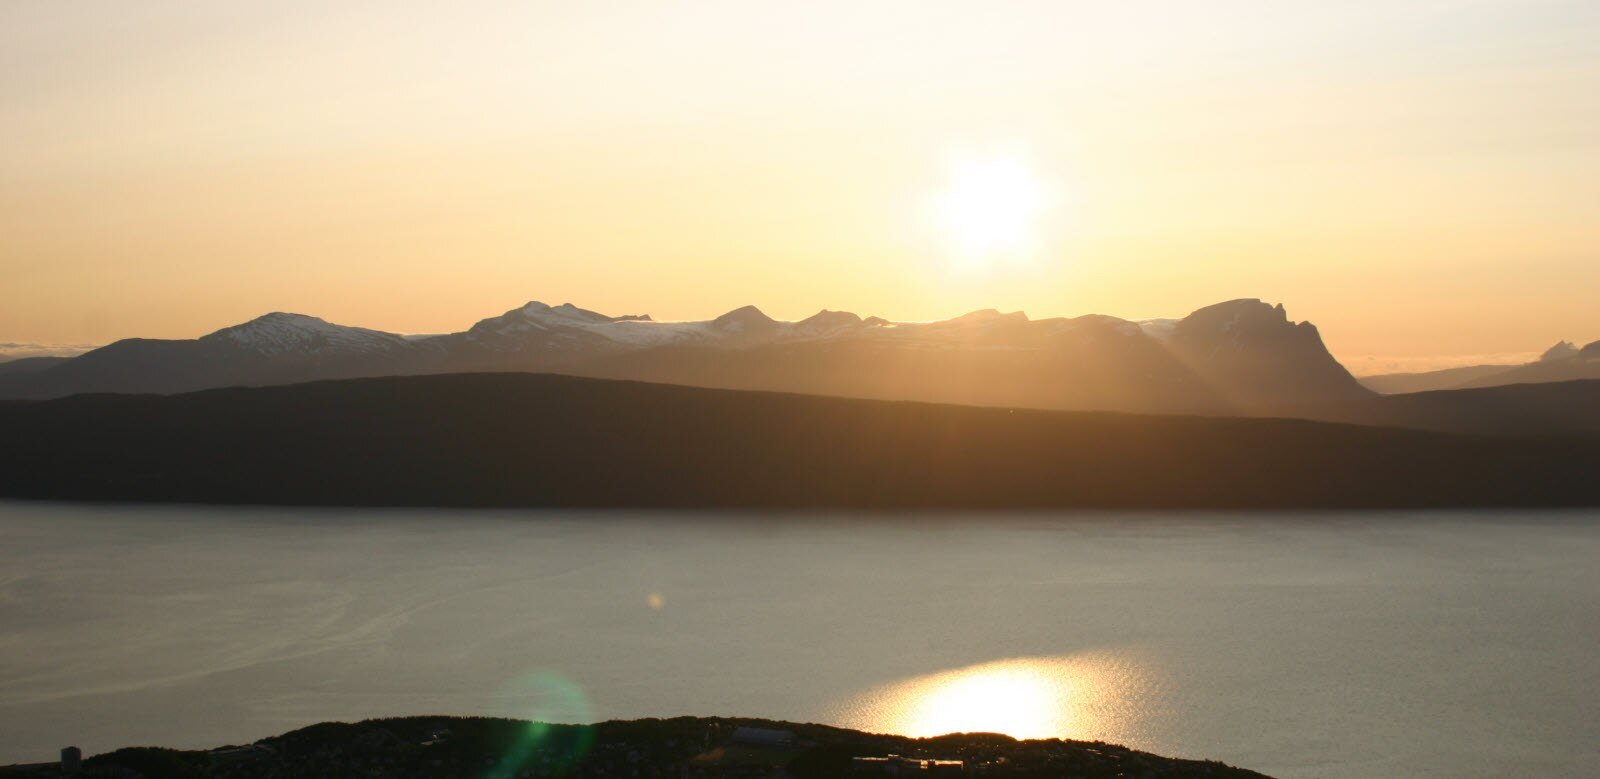 norway-narvik-midnight-sun_mostphotos_com.jpg